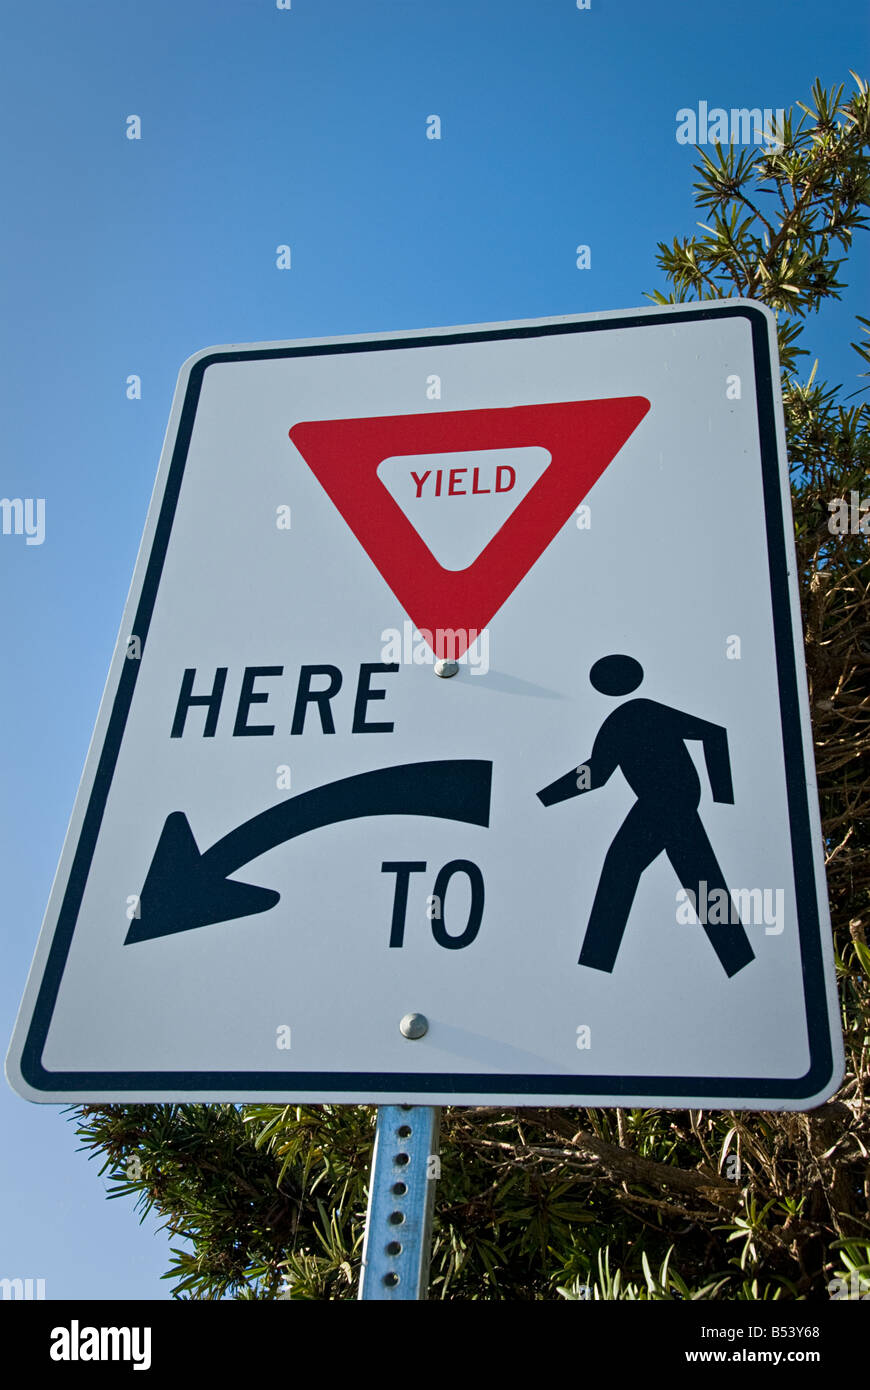 Yield here to pedestrian traffic sign - Stock Image